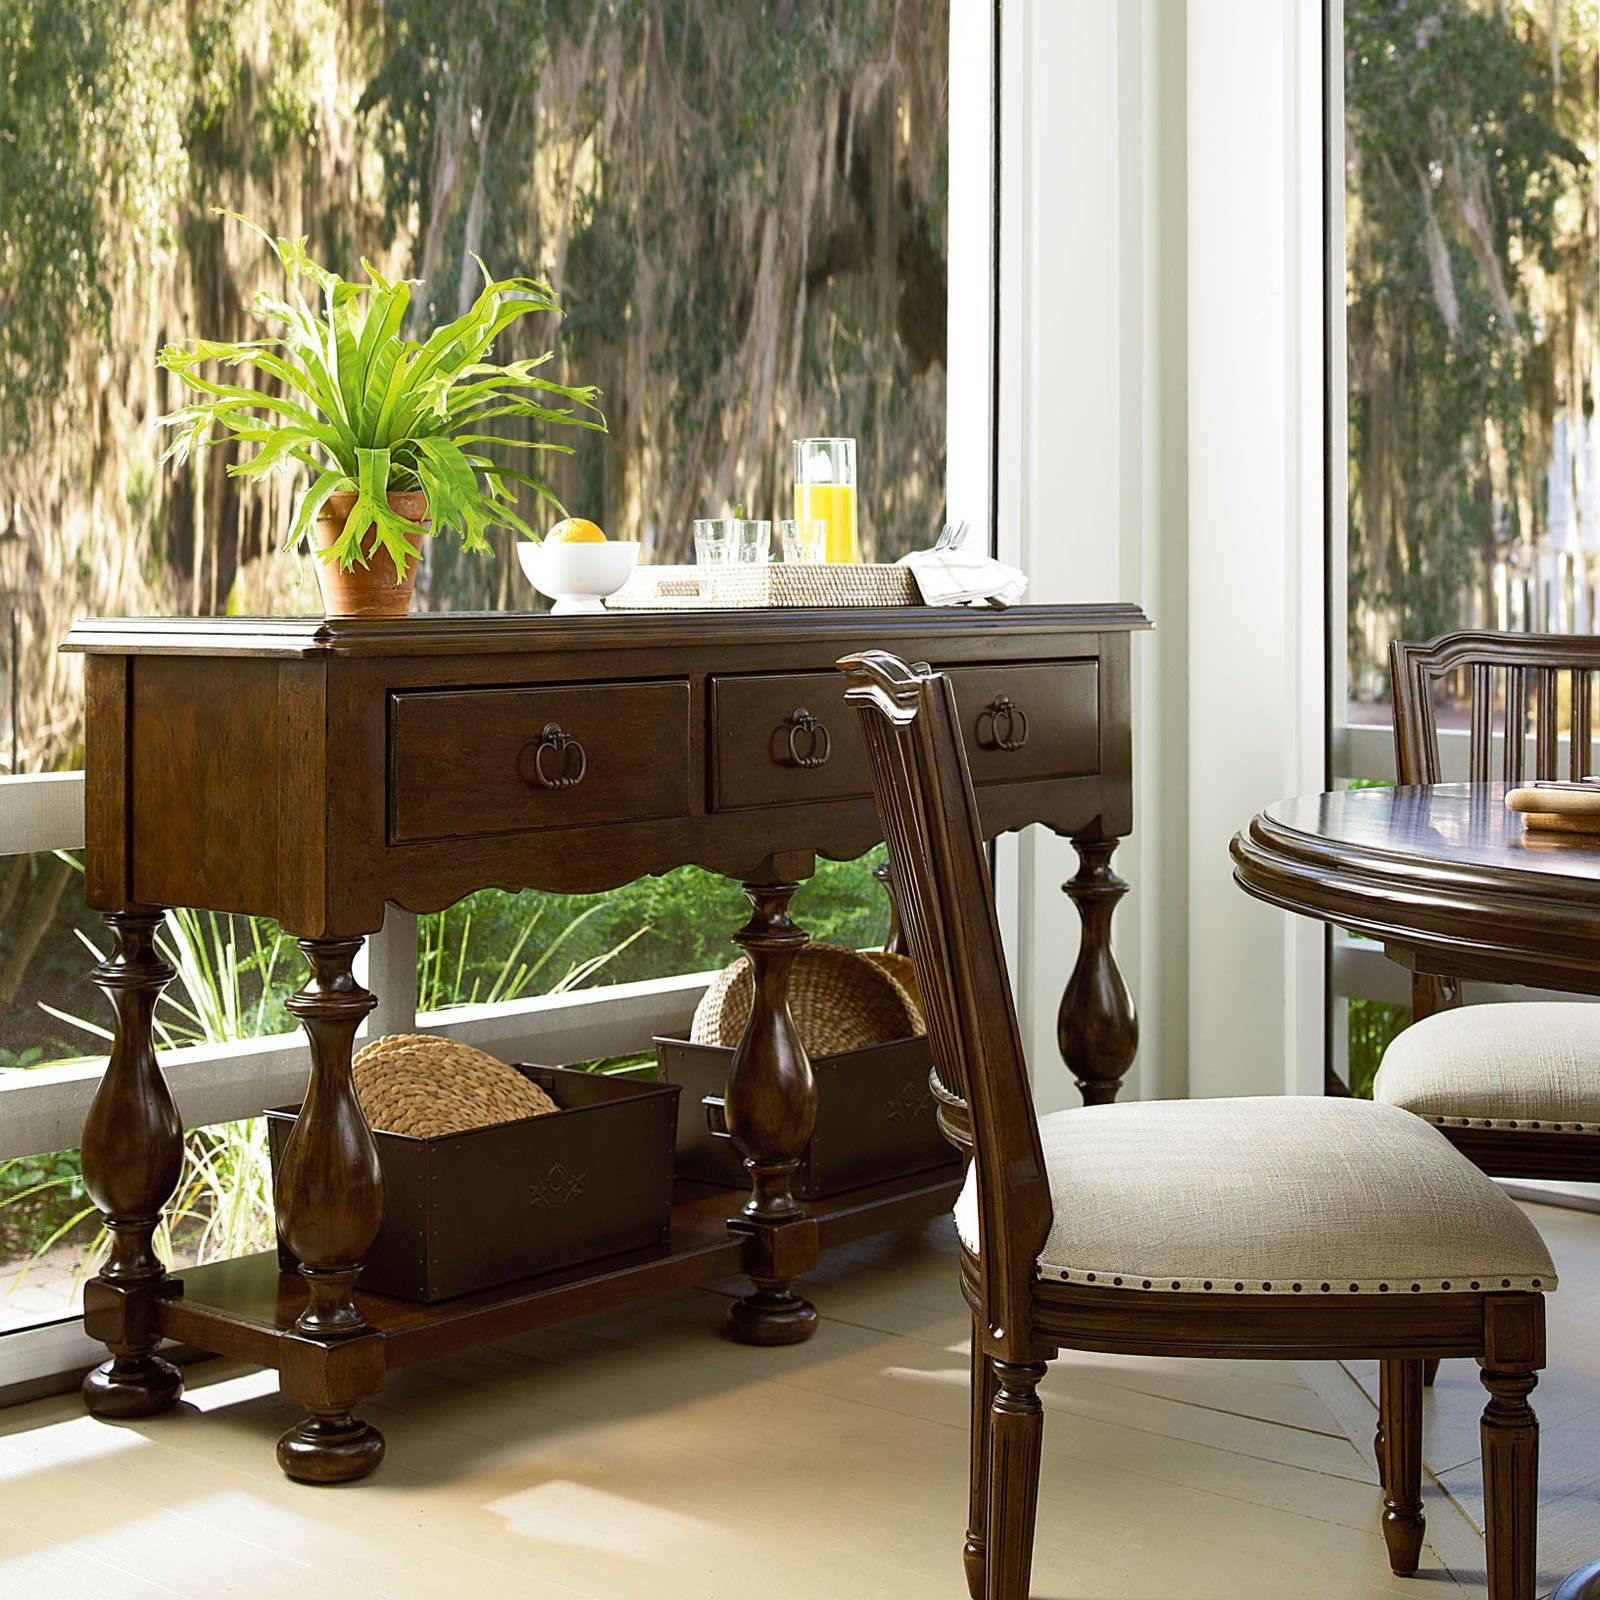 paula deen river house huntboard - river bank | furniture ideas, Esstisch ideennn